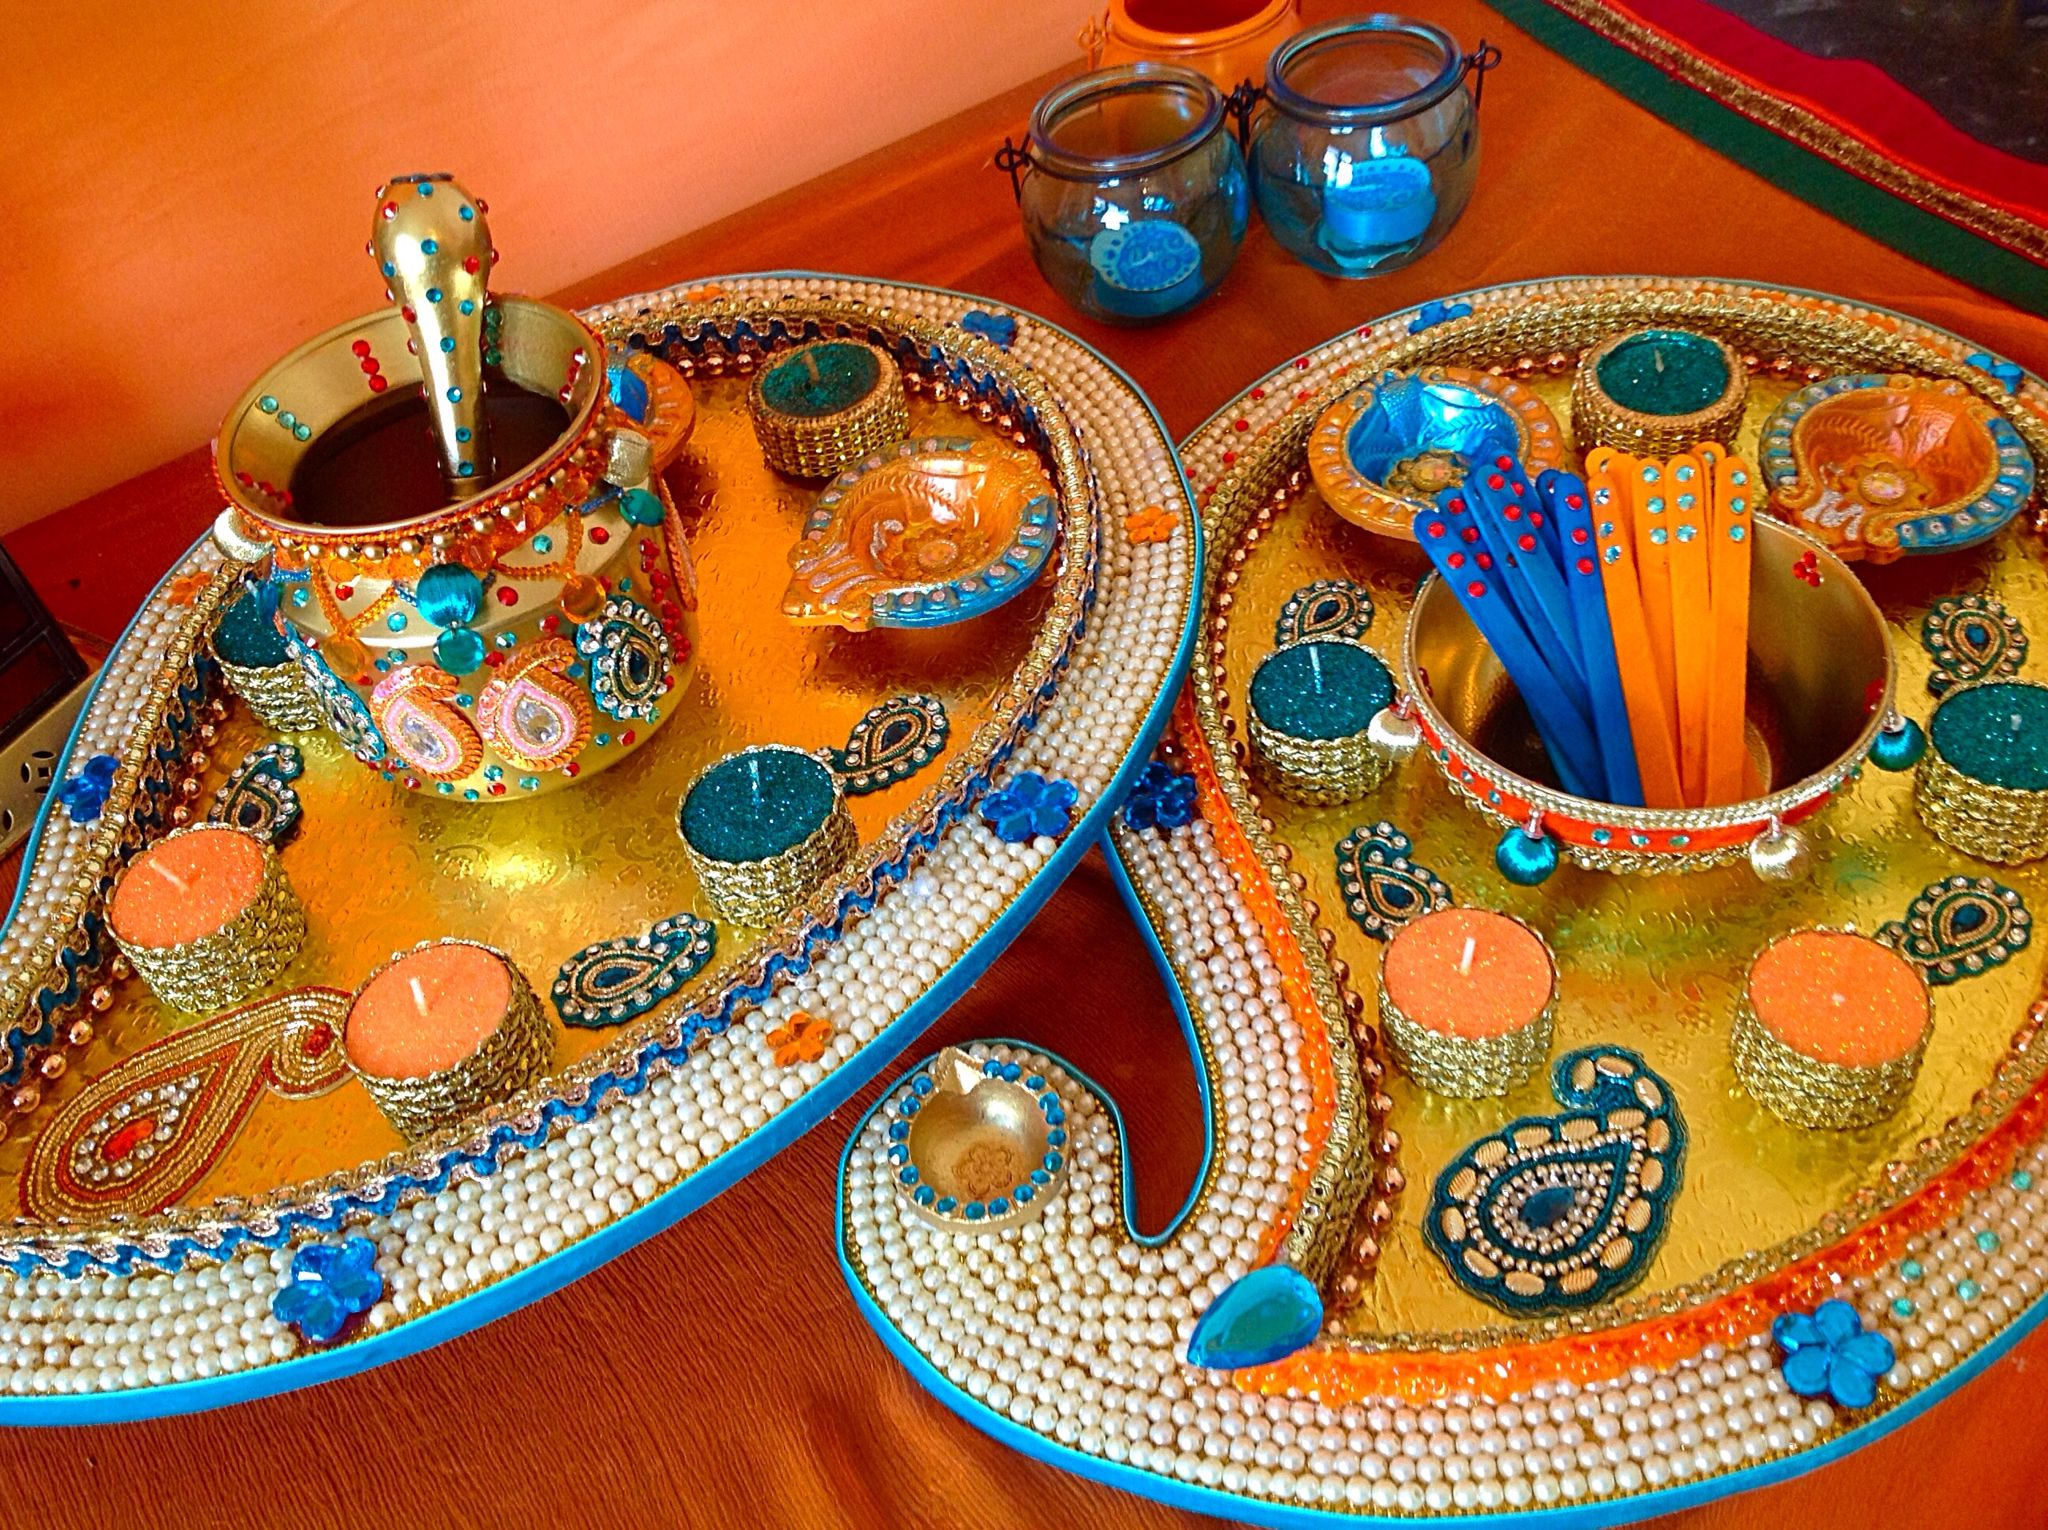 Diy Mehndi Plates : Large paisley shaped mehndi plates these are being used for the